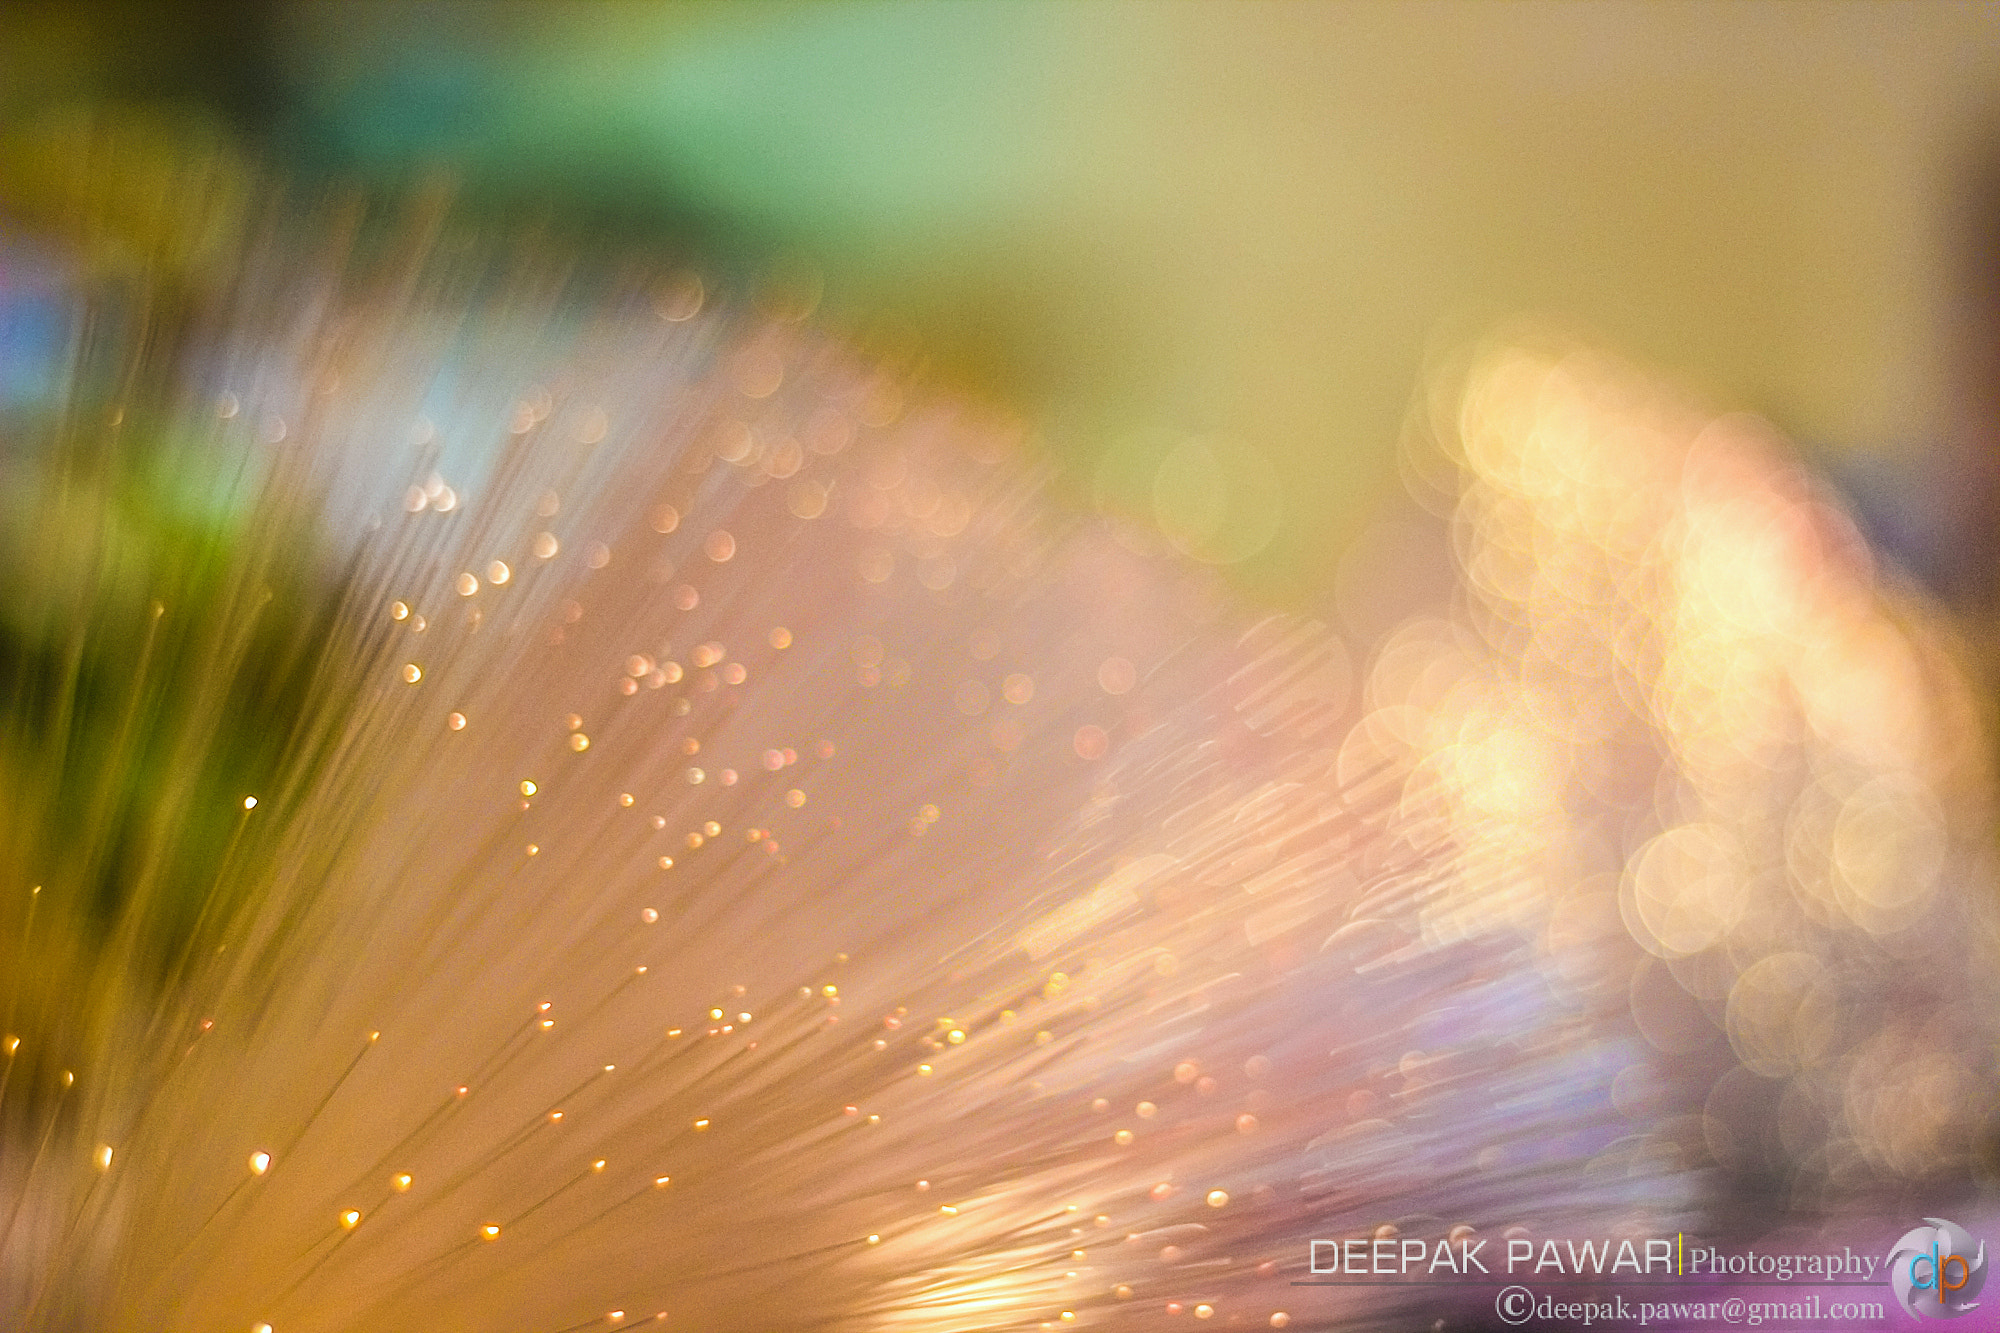 Photograph Optical circuits by Deepak Pawar on 500px